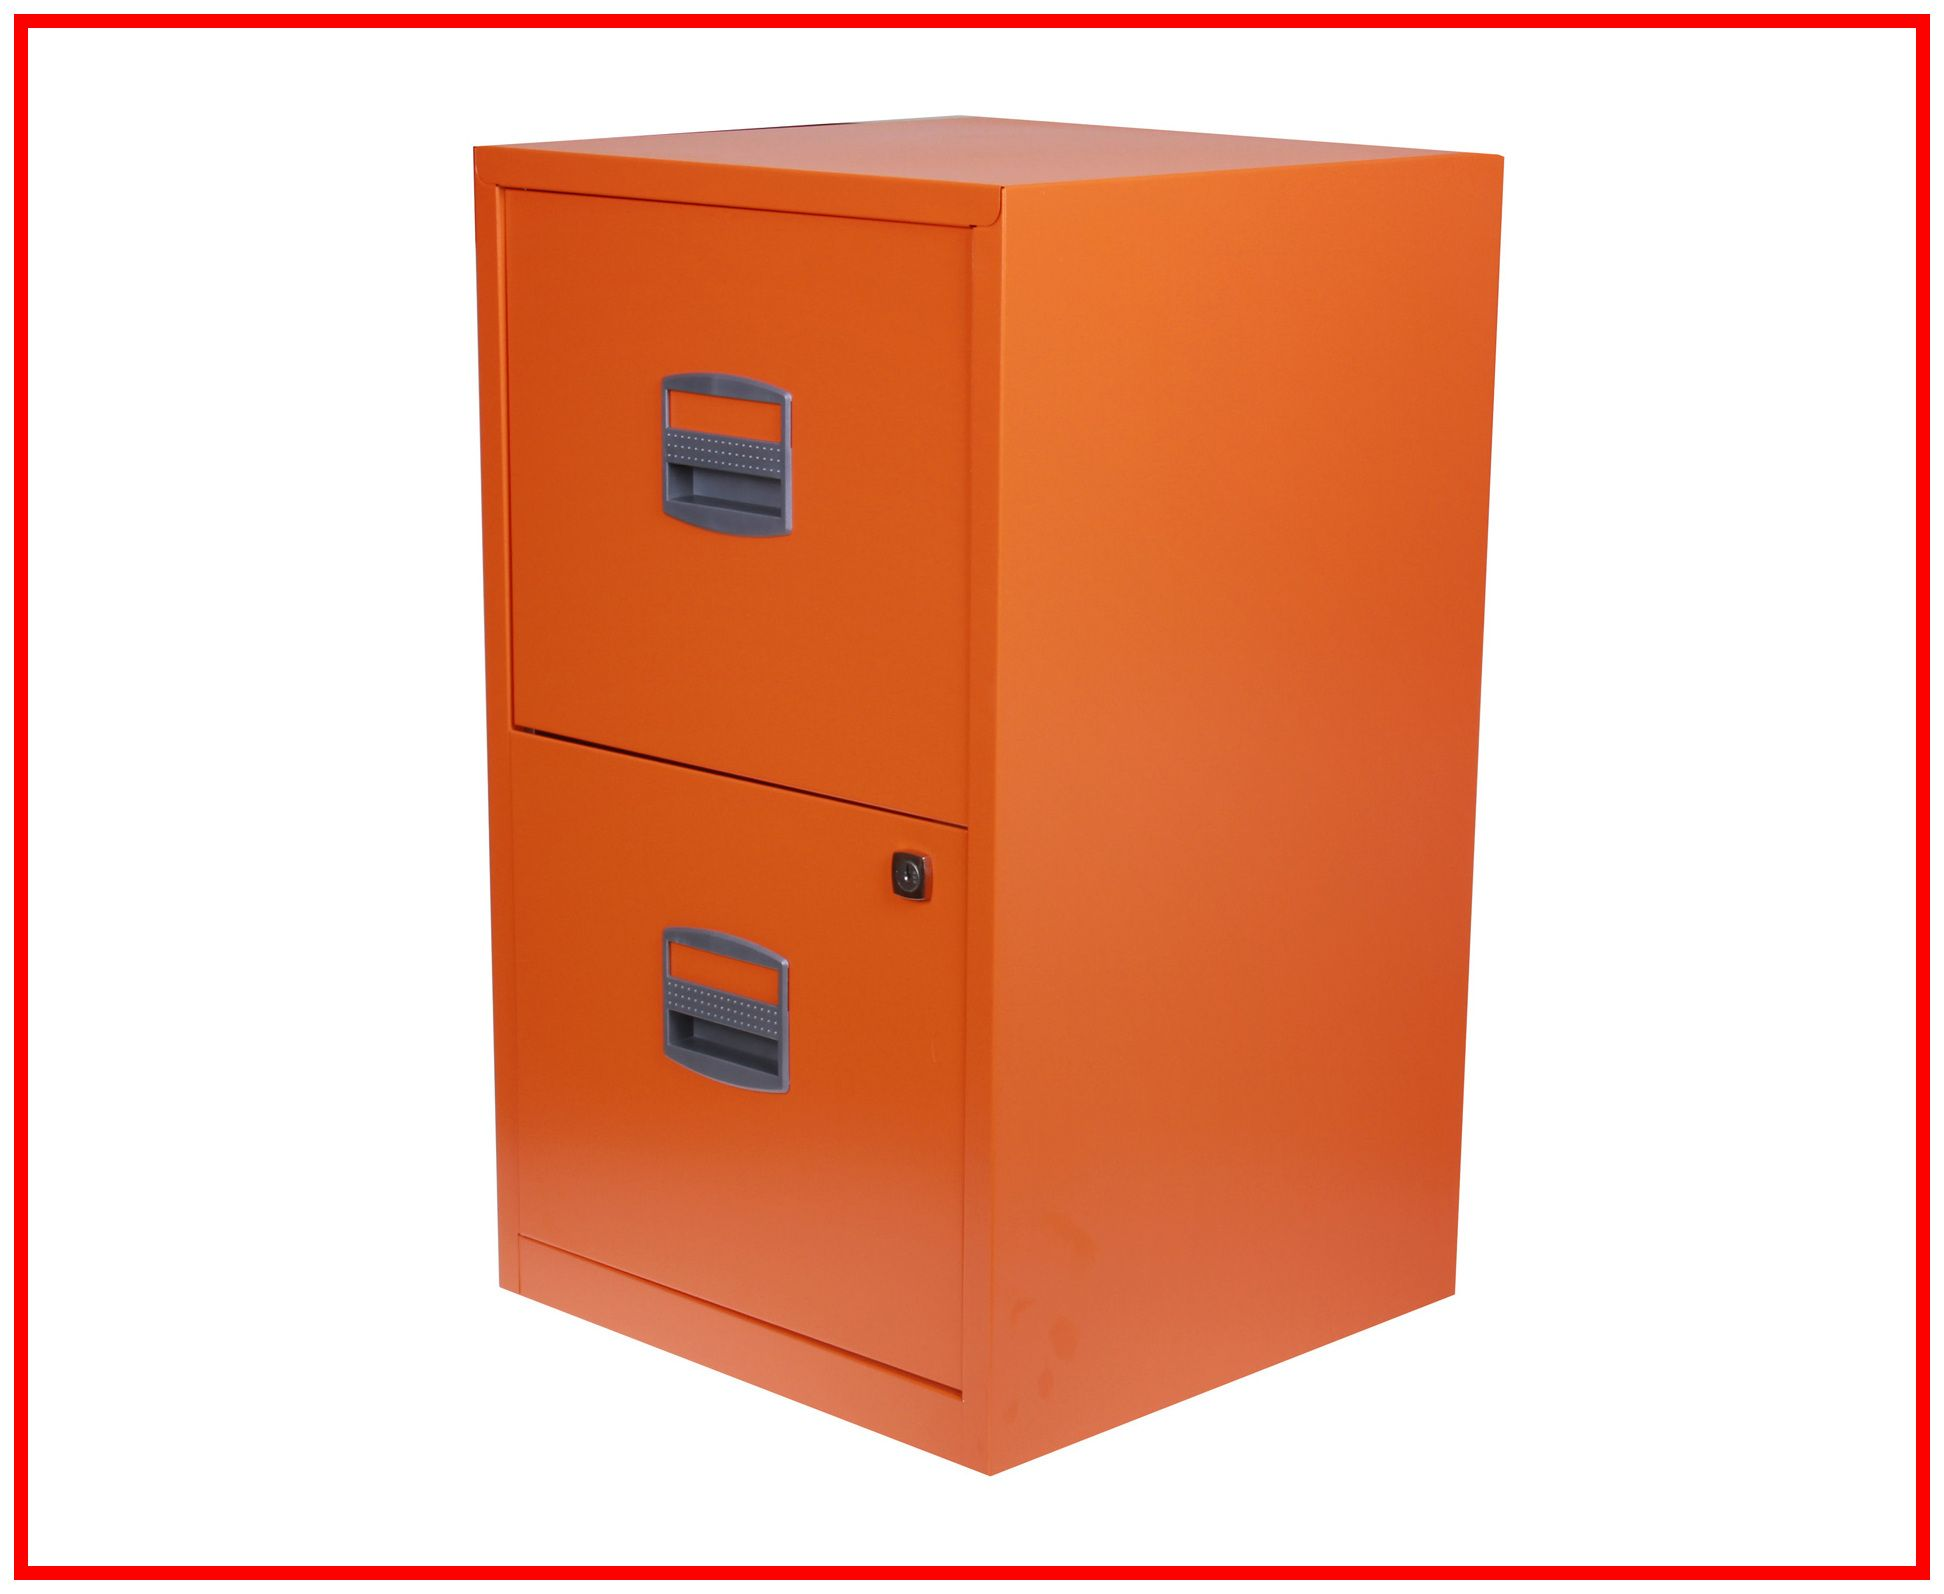 87 Reference Of 2 Drawer Filing Cabinet Bisley In 2020 Filing